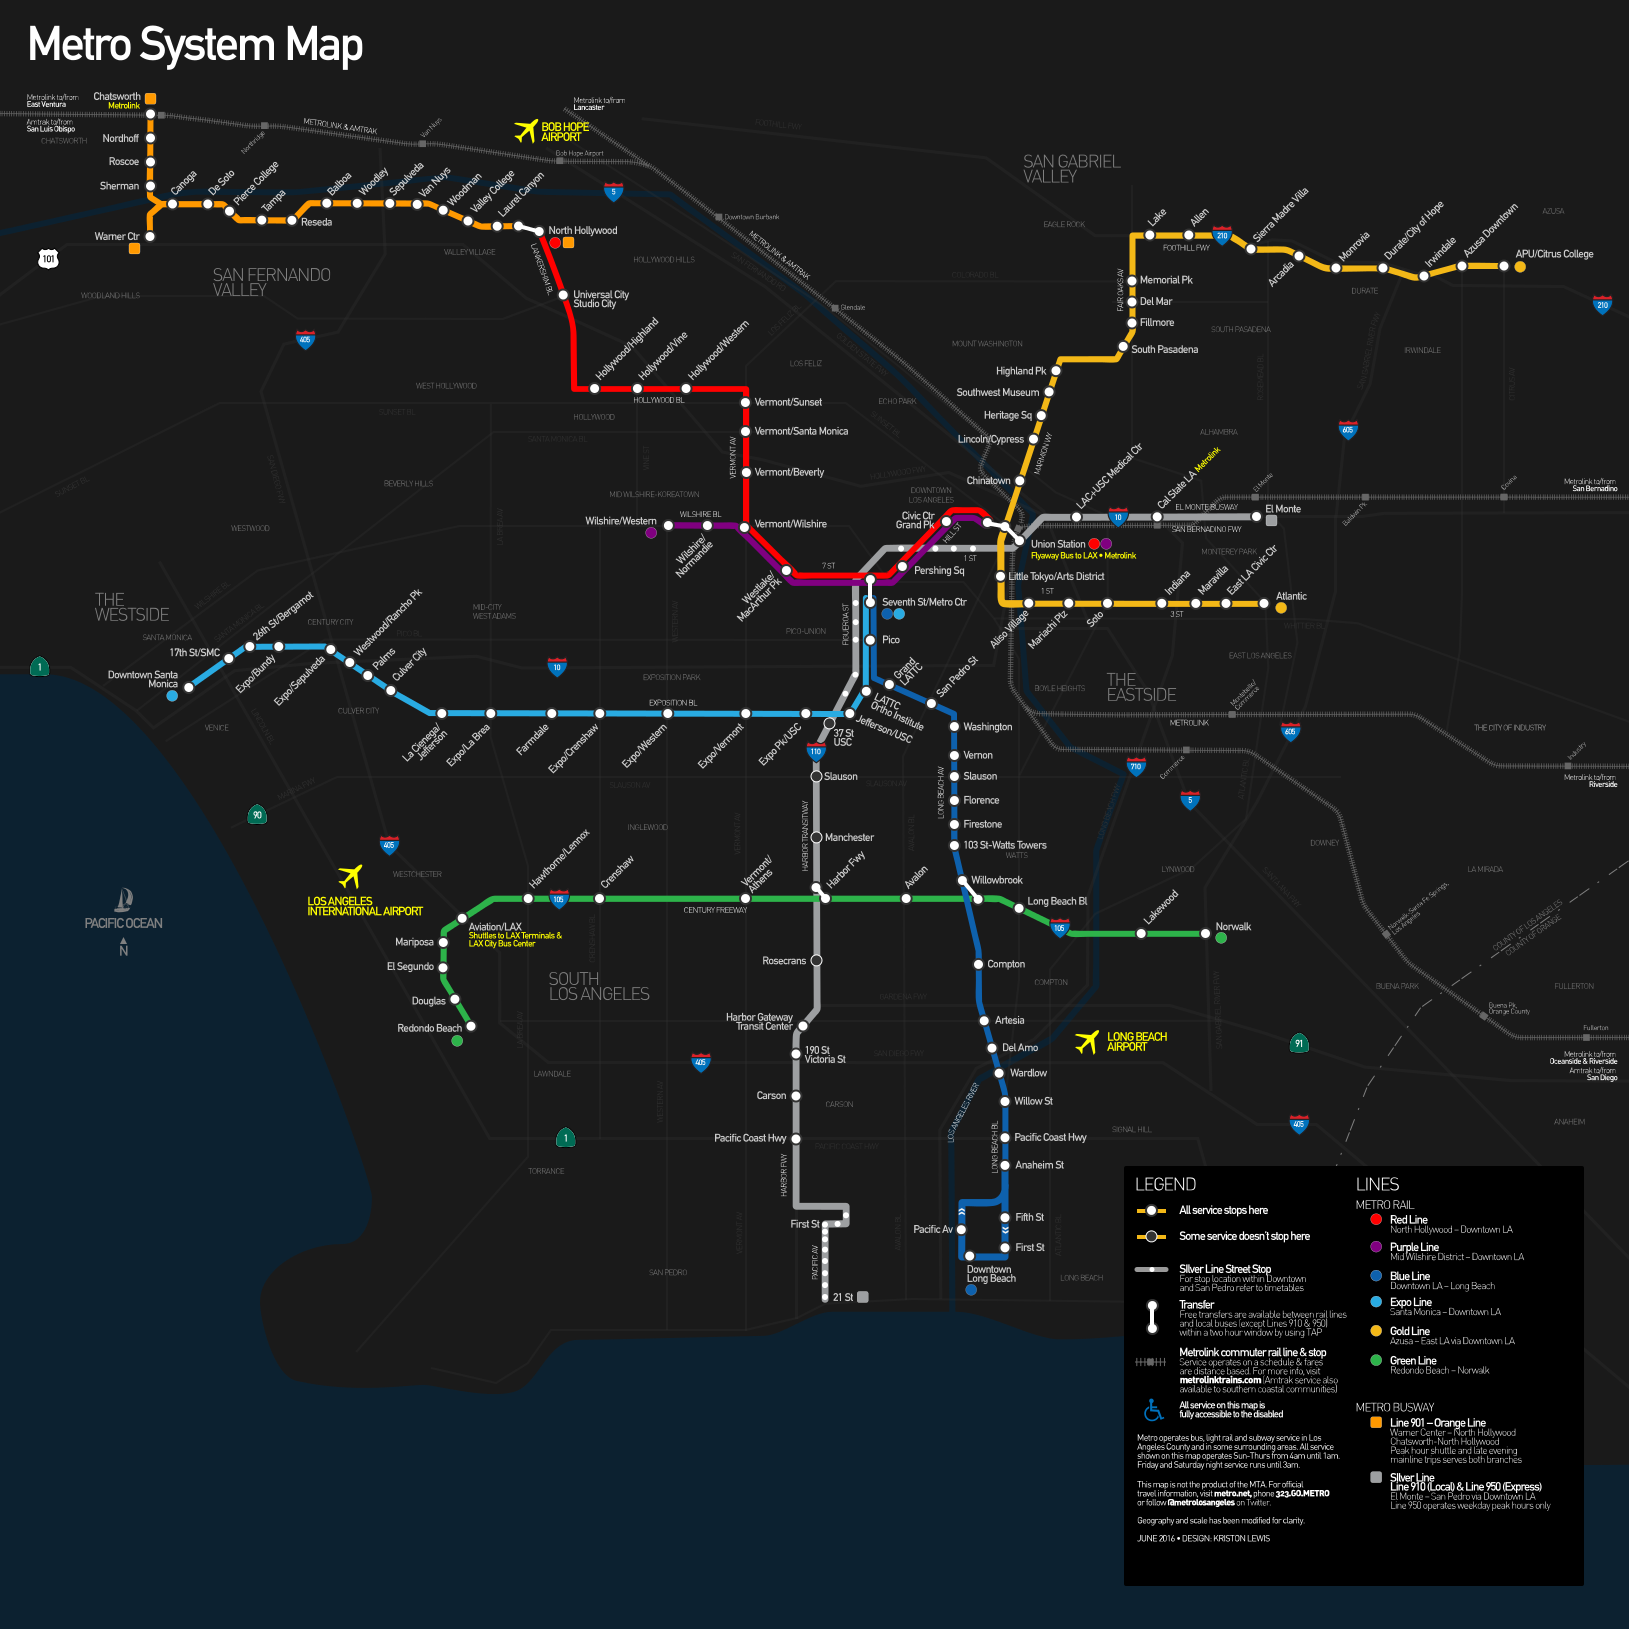 Los Angeles County Metro Rail And Metro Liner Map Los Angeles County Metropolitan Tran Metro Rail Los Angeles Metro Map Metropolitan Transportation Authority